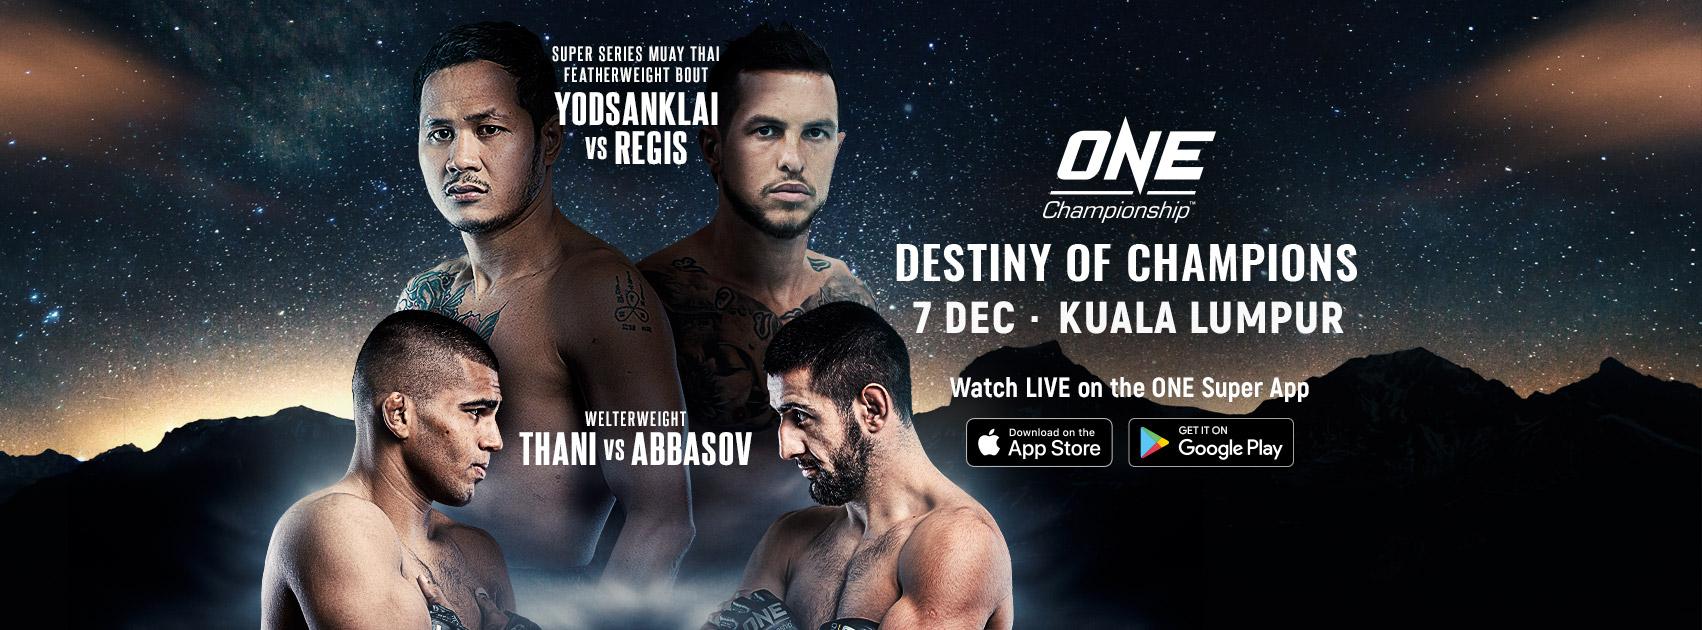 ONE Championship: Destiny of Champions - December 7 (Official Discussion)  16-ONE-Championship-Destiny-Of-Champions-Promo-1